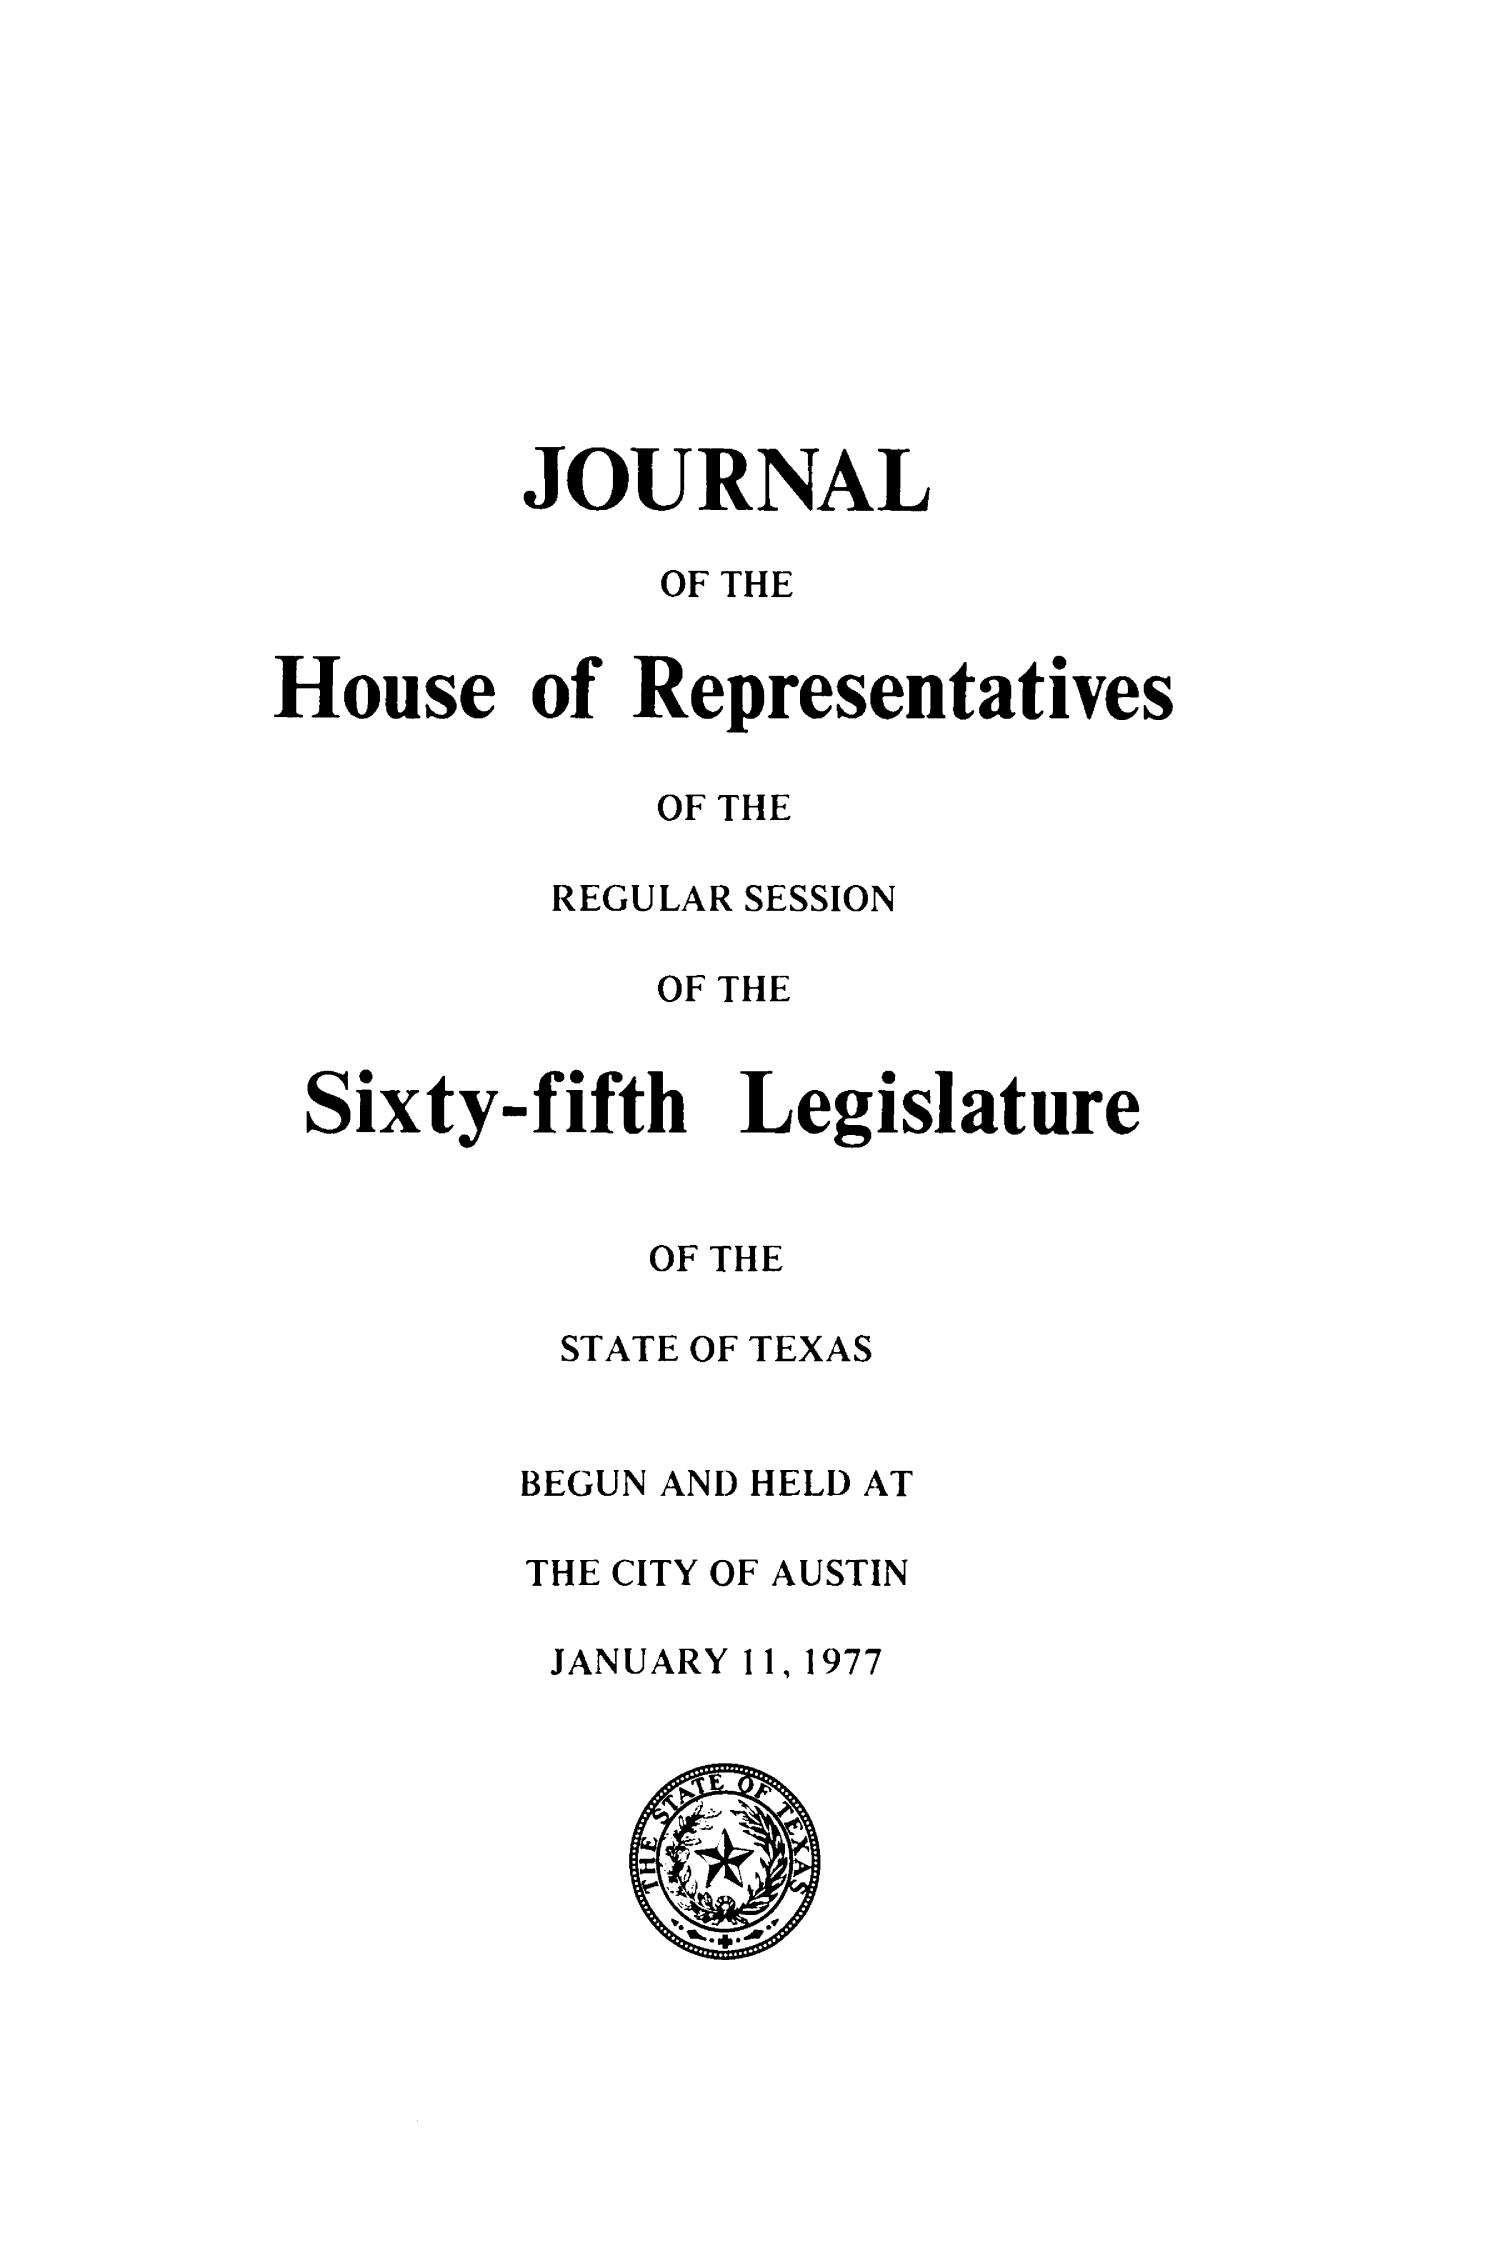 Journal of the House of Representatives of the Sixty-Fifth Legislature of the State of Texas, Volume 3                                                                                                      Title Page